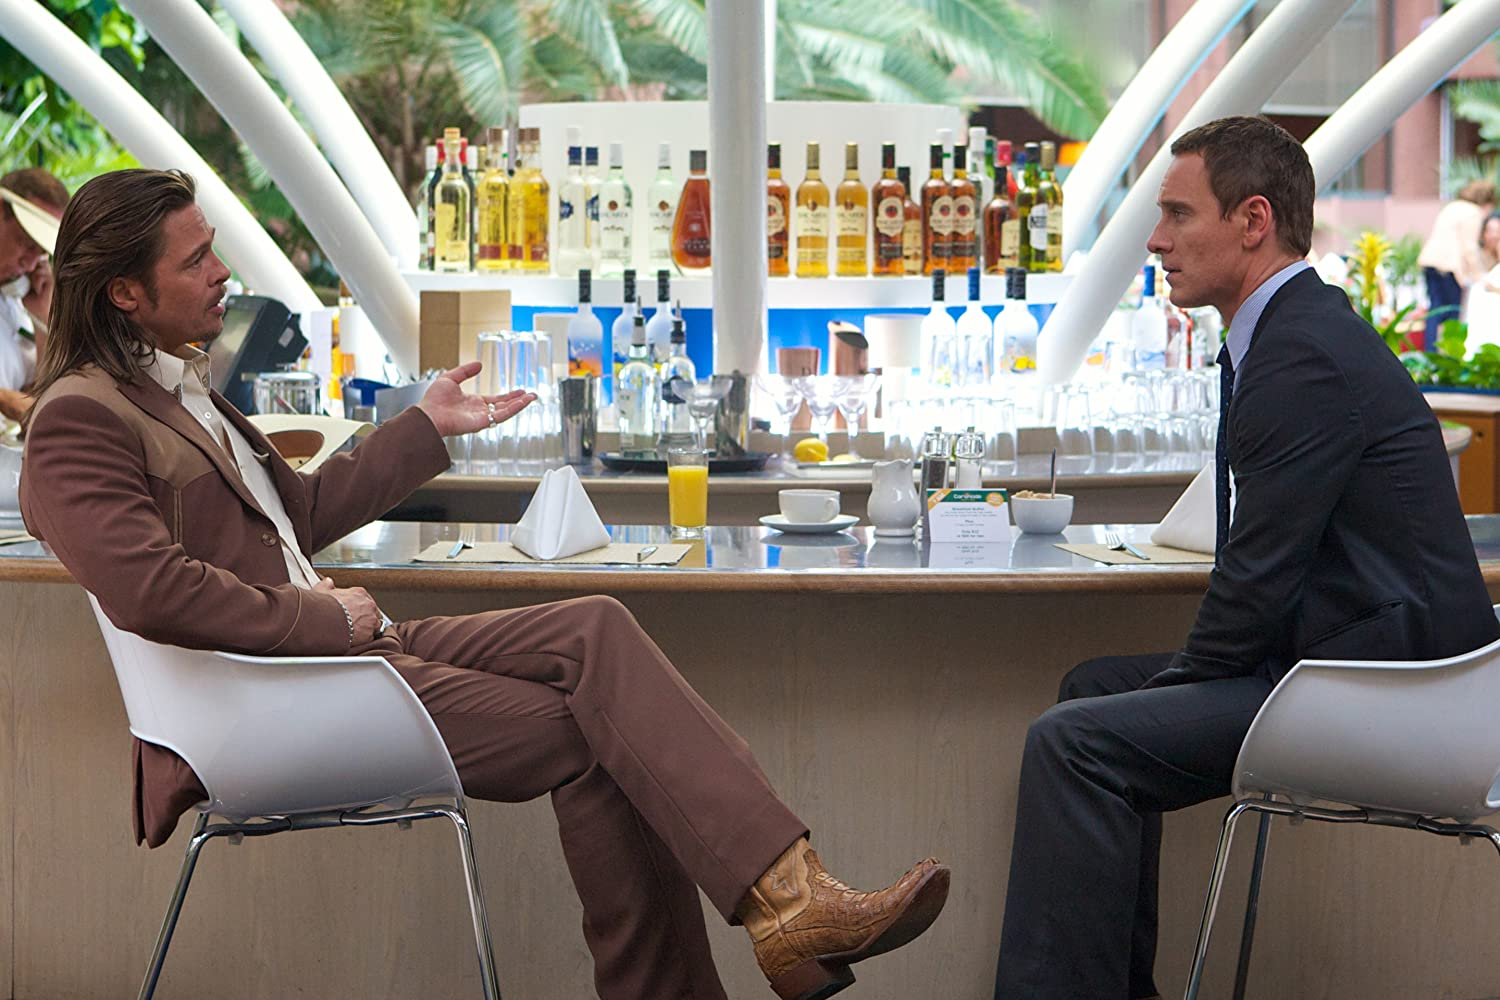 Brad Pitt and Michael Fassbender in The Counselor (2013)